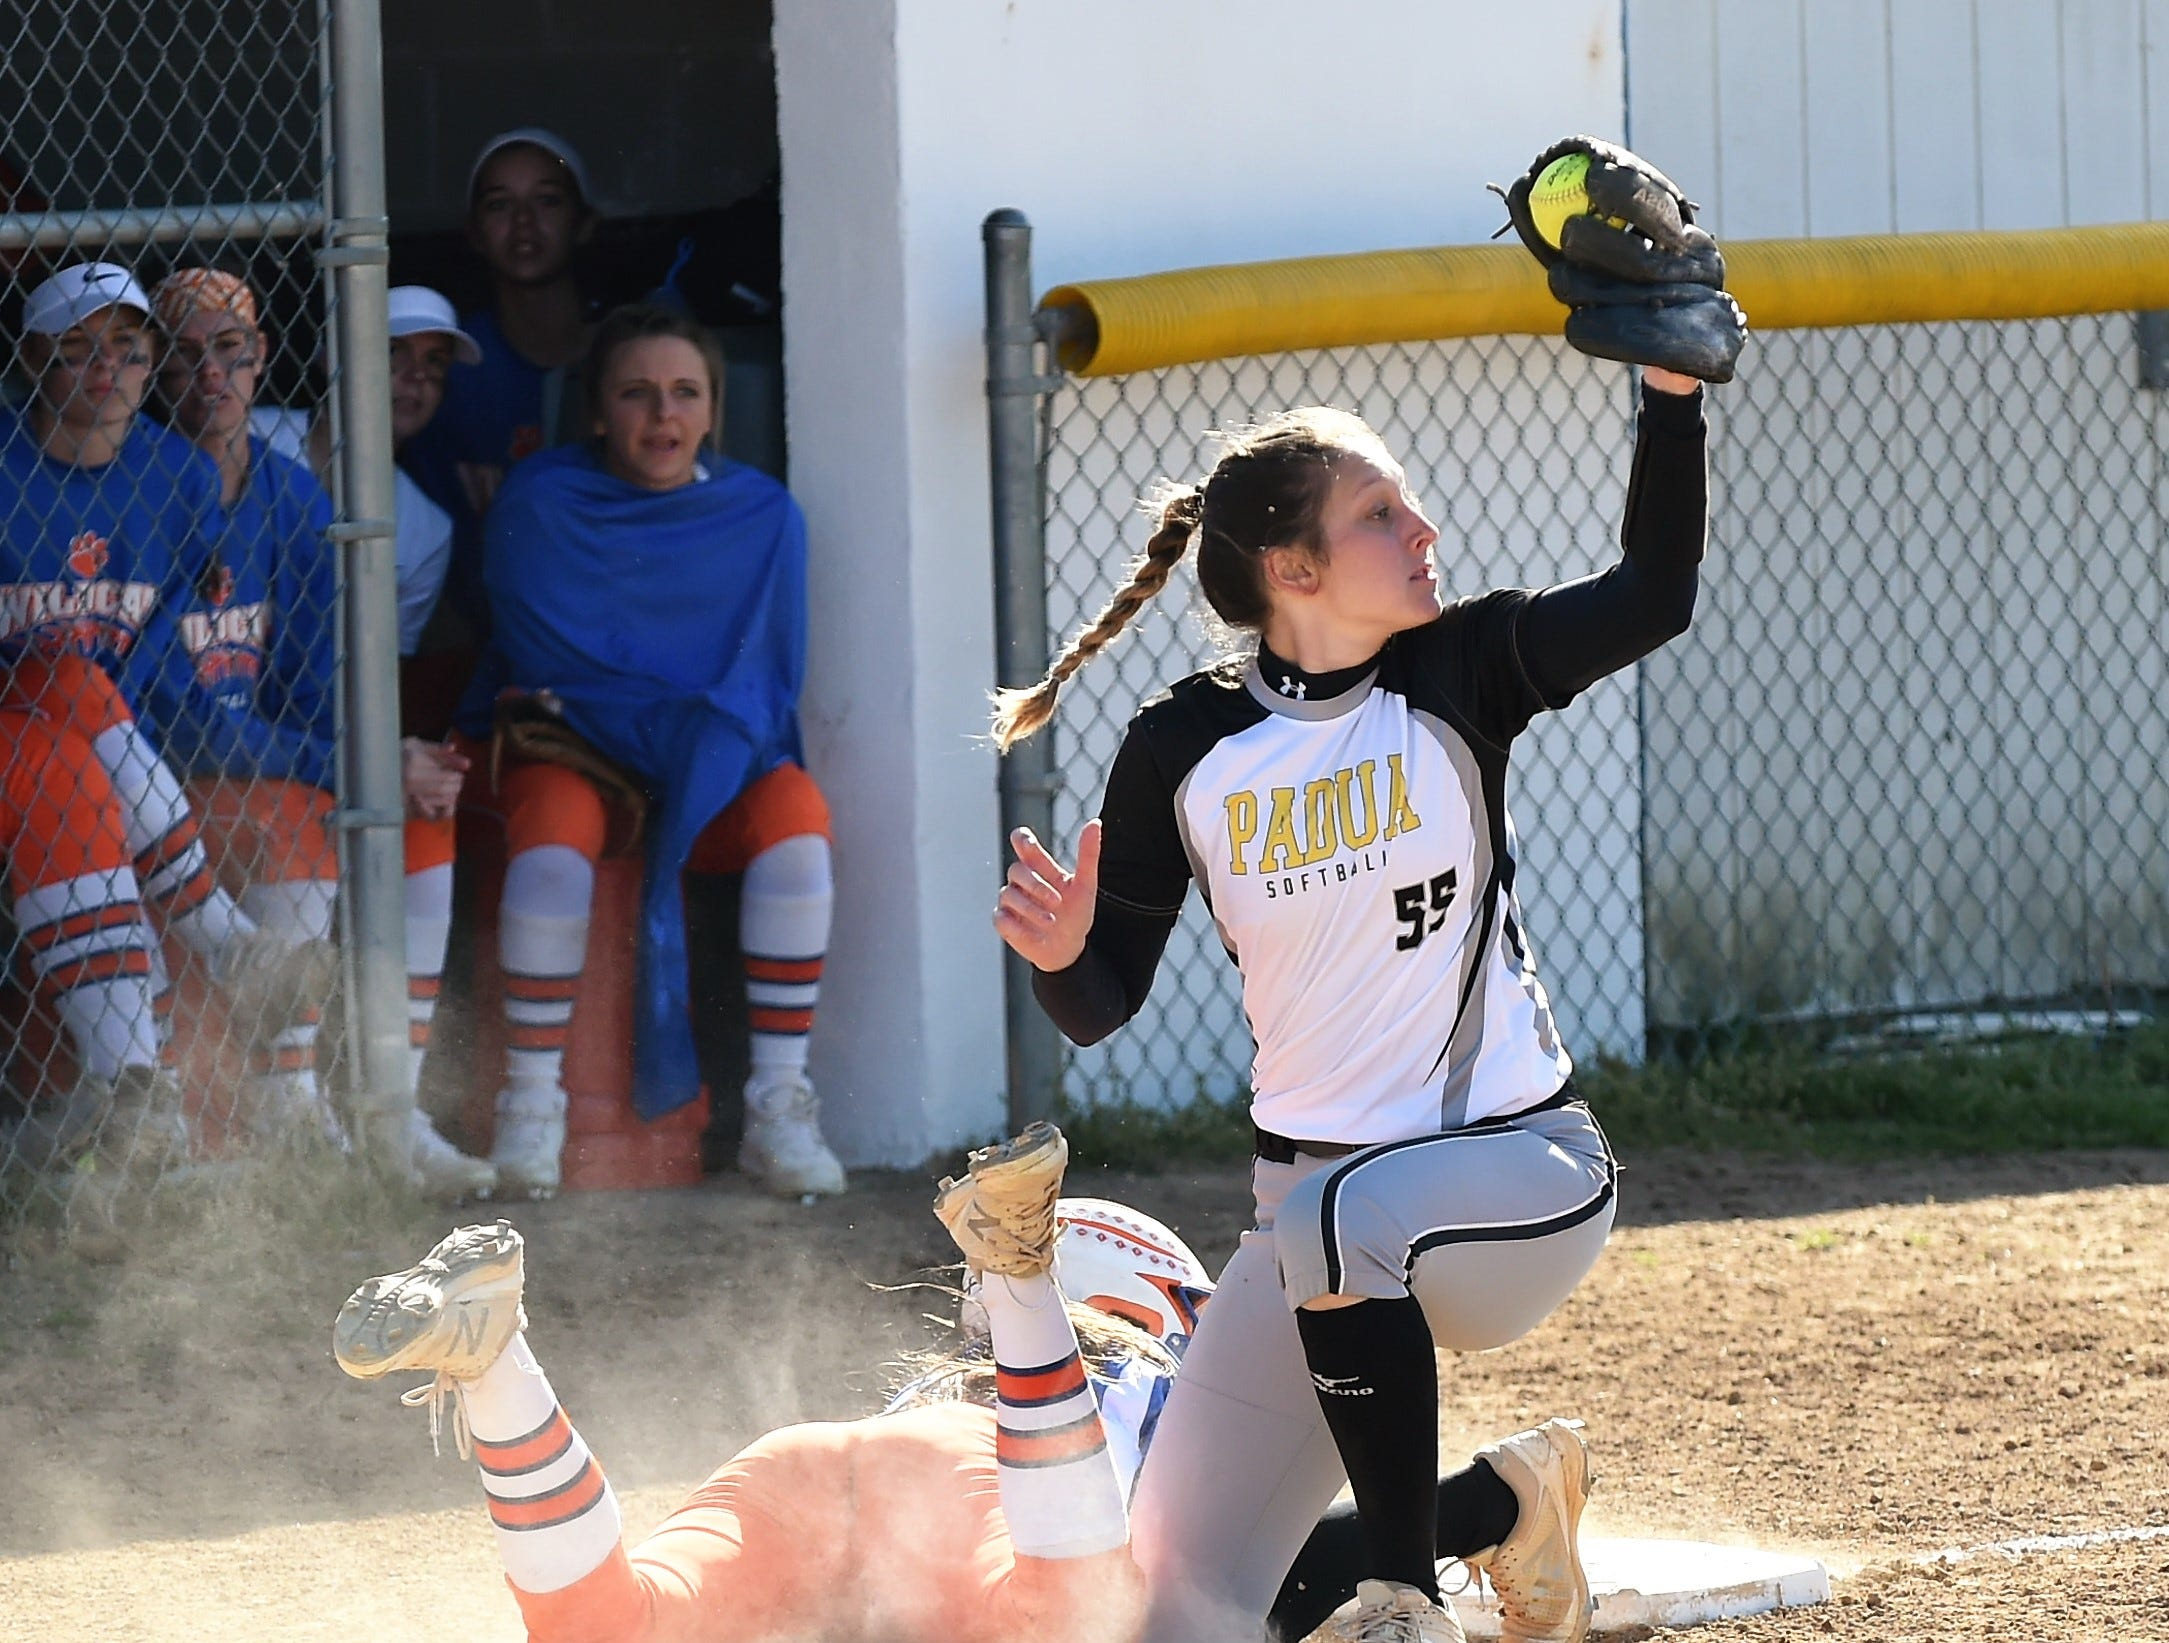 Padua's Alexandra Musial gets the tag-out at third base on Monday, April 15, 2019.